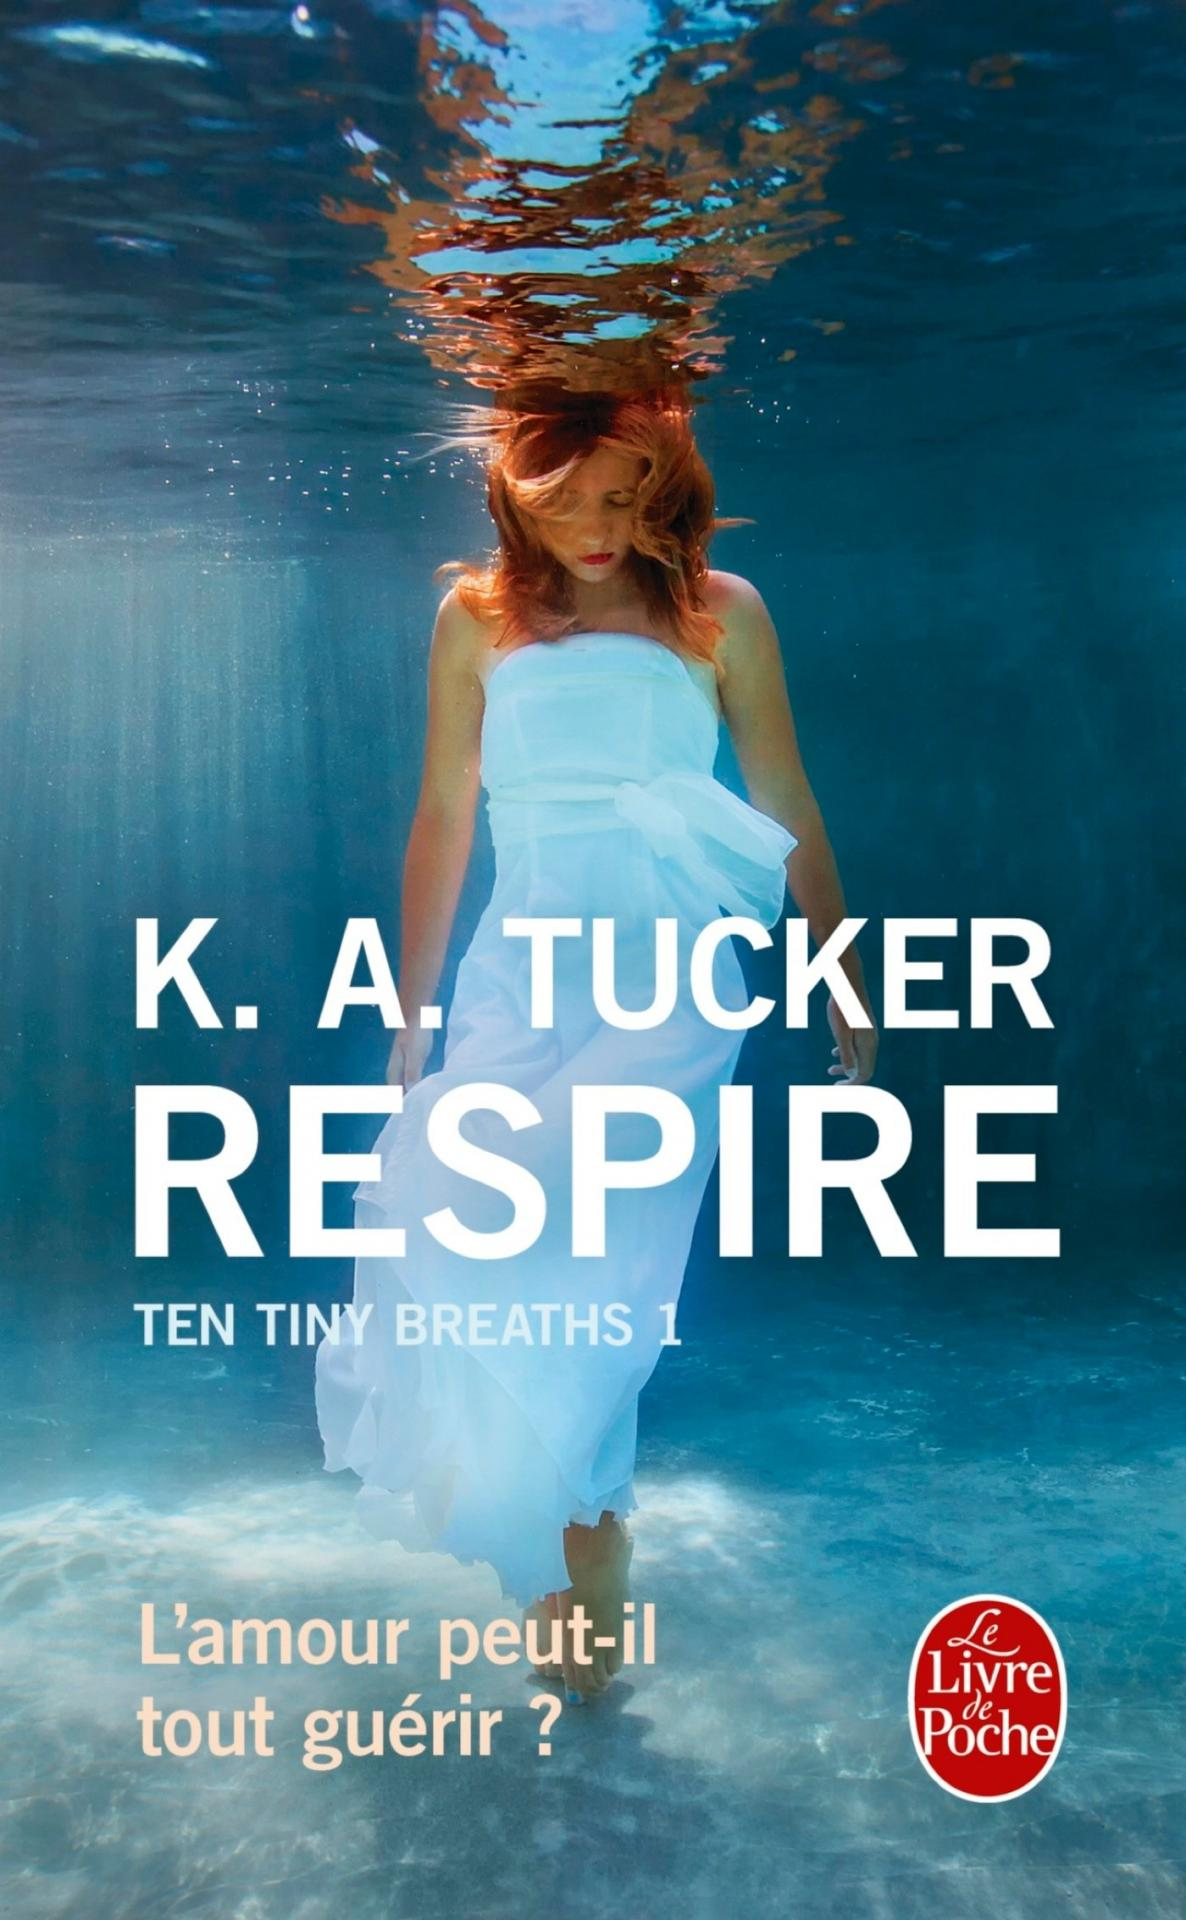 http://leschroniquesdestia.e-monsite.com/pages/chroniques/ten-tiny-breaths-tome-1-respire-k-a-tucker.html